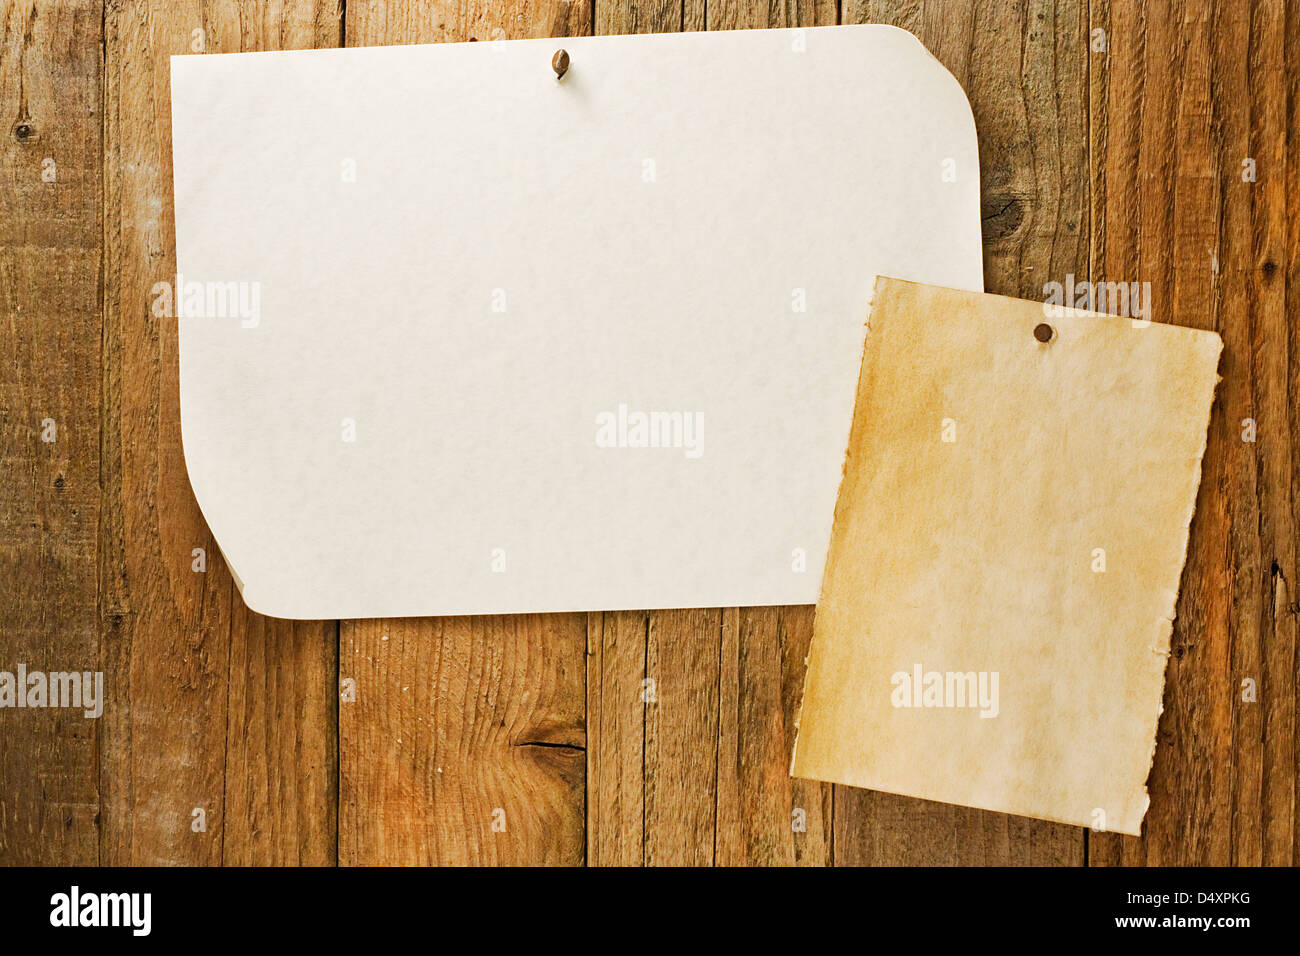 mottled beige parchment paper posters similar to the grungy cowboy wanted notices nailed to vintage wooden planks - Stock Image